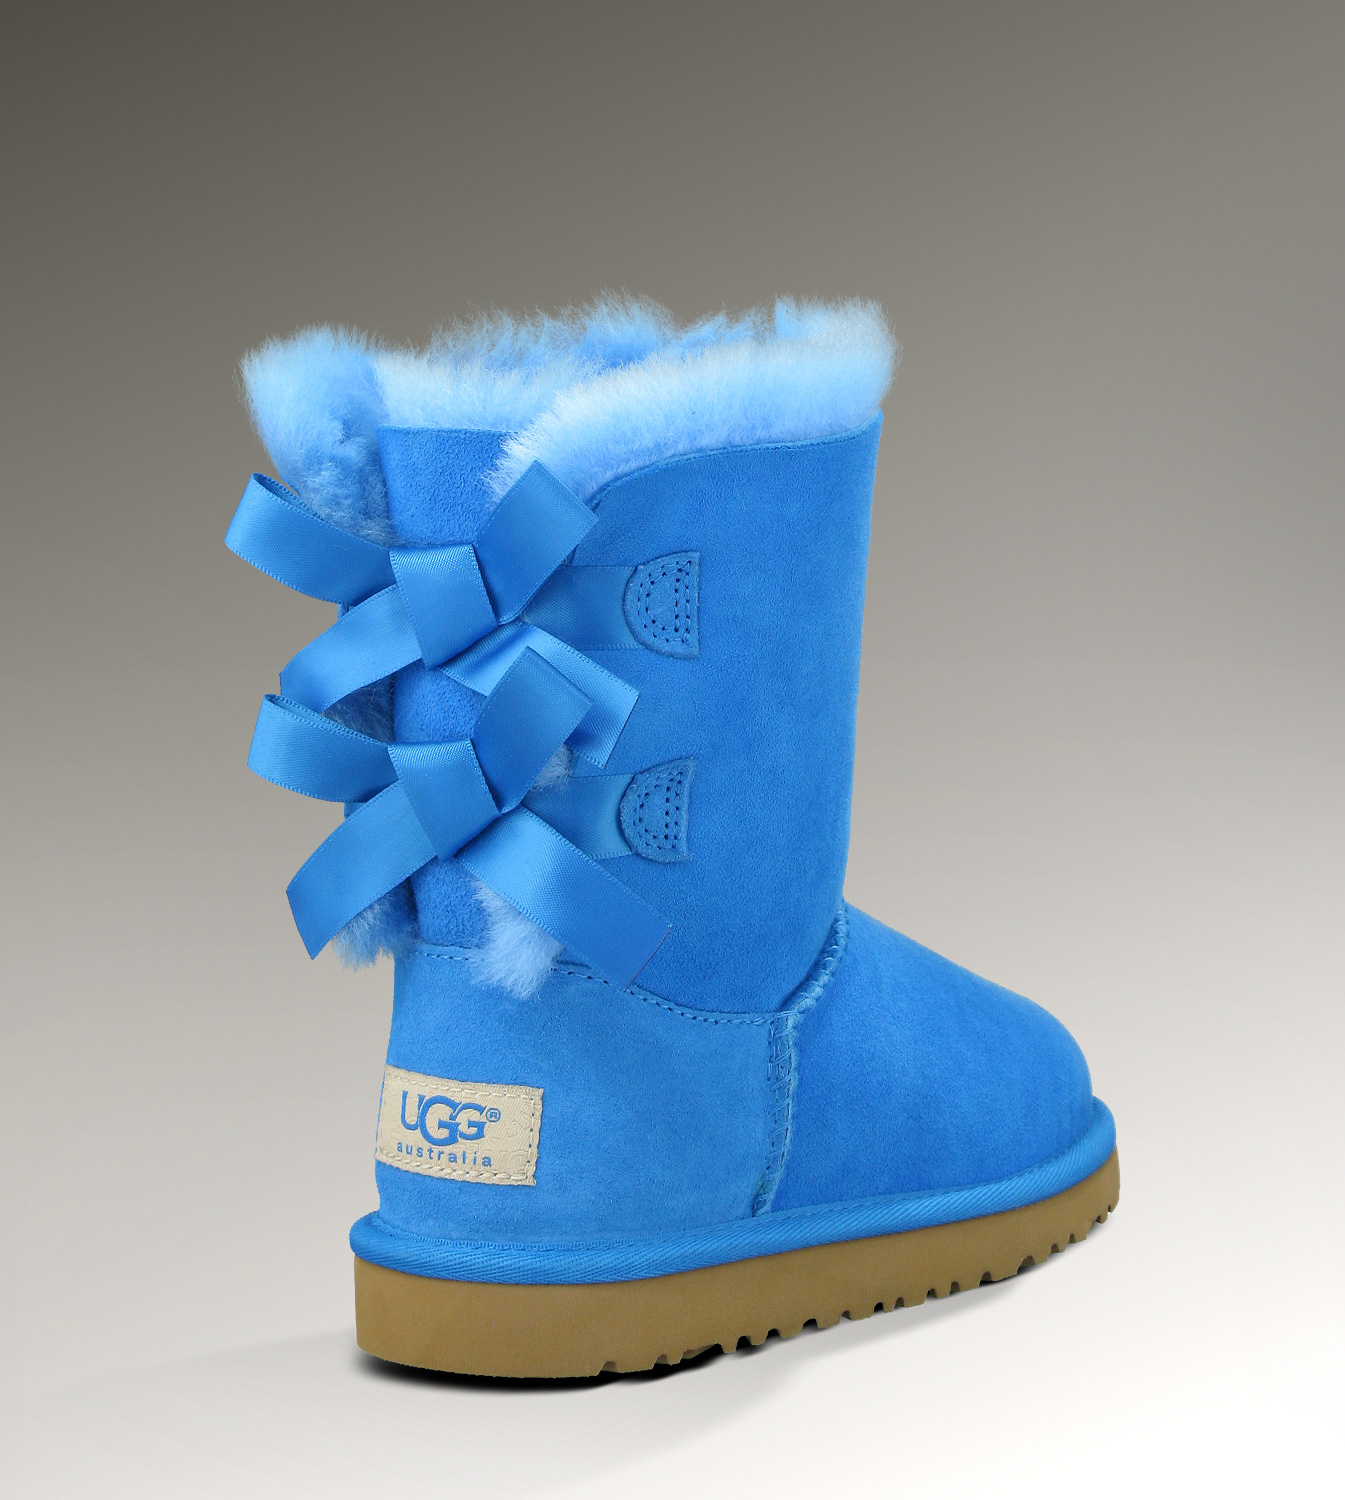 Ugg Bailey Bow 1002954 Blue Boots Ugg151012 005 145